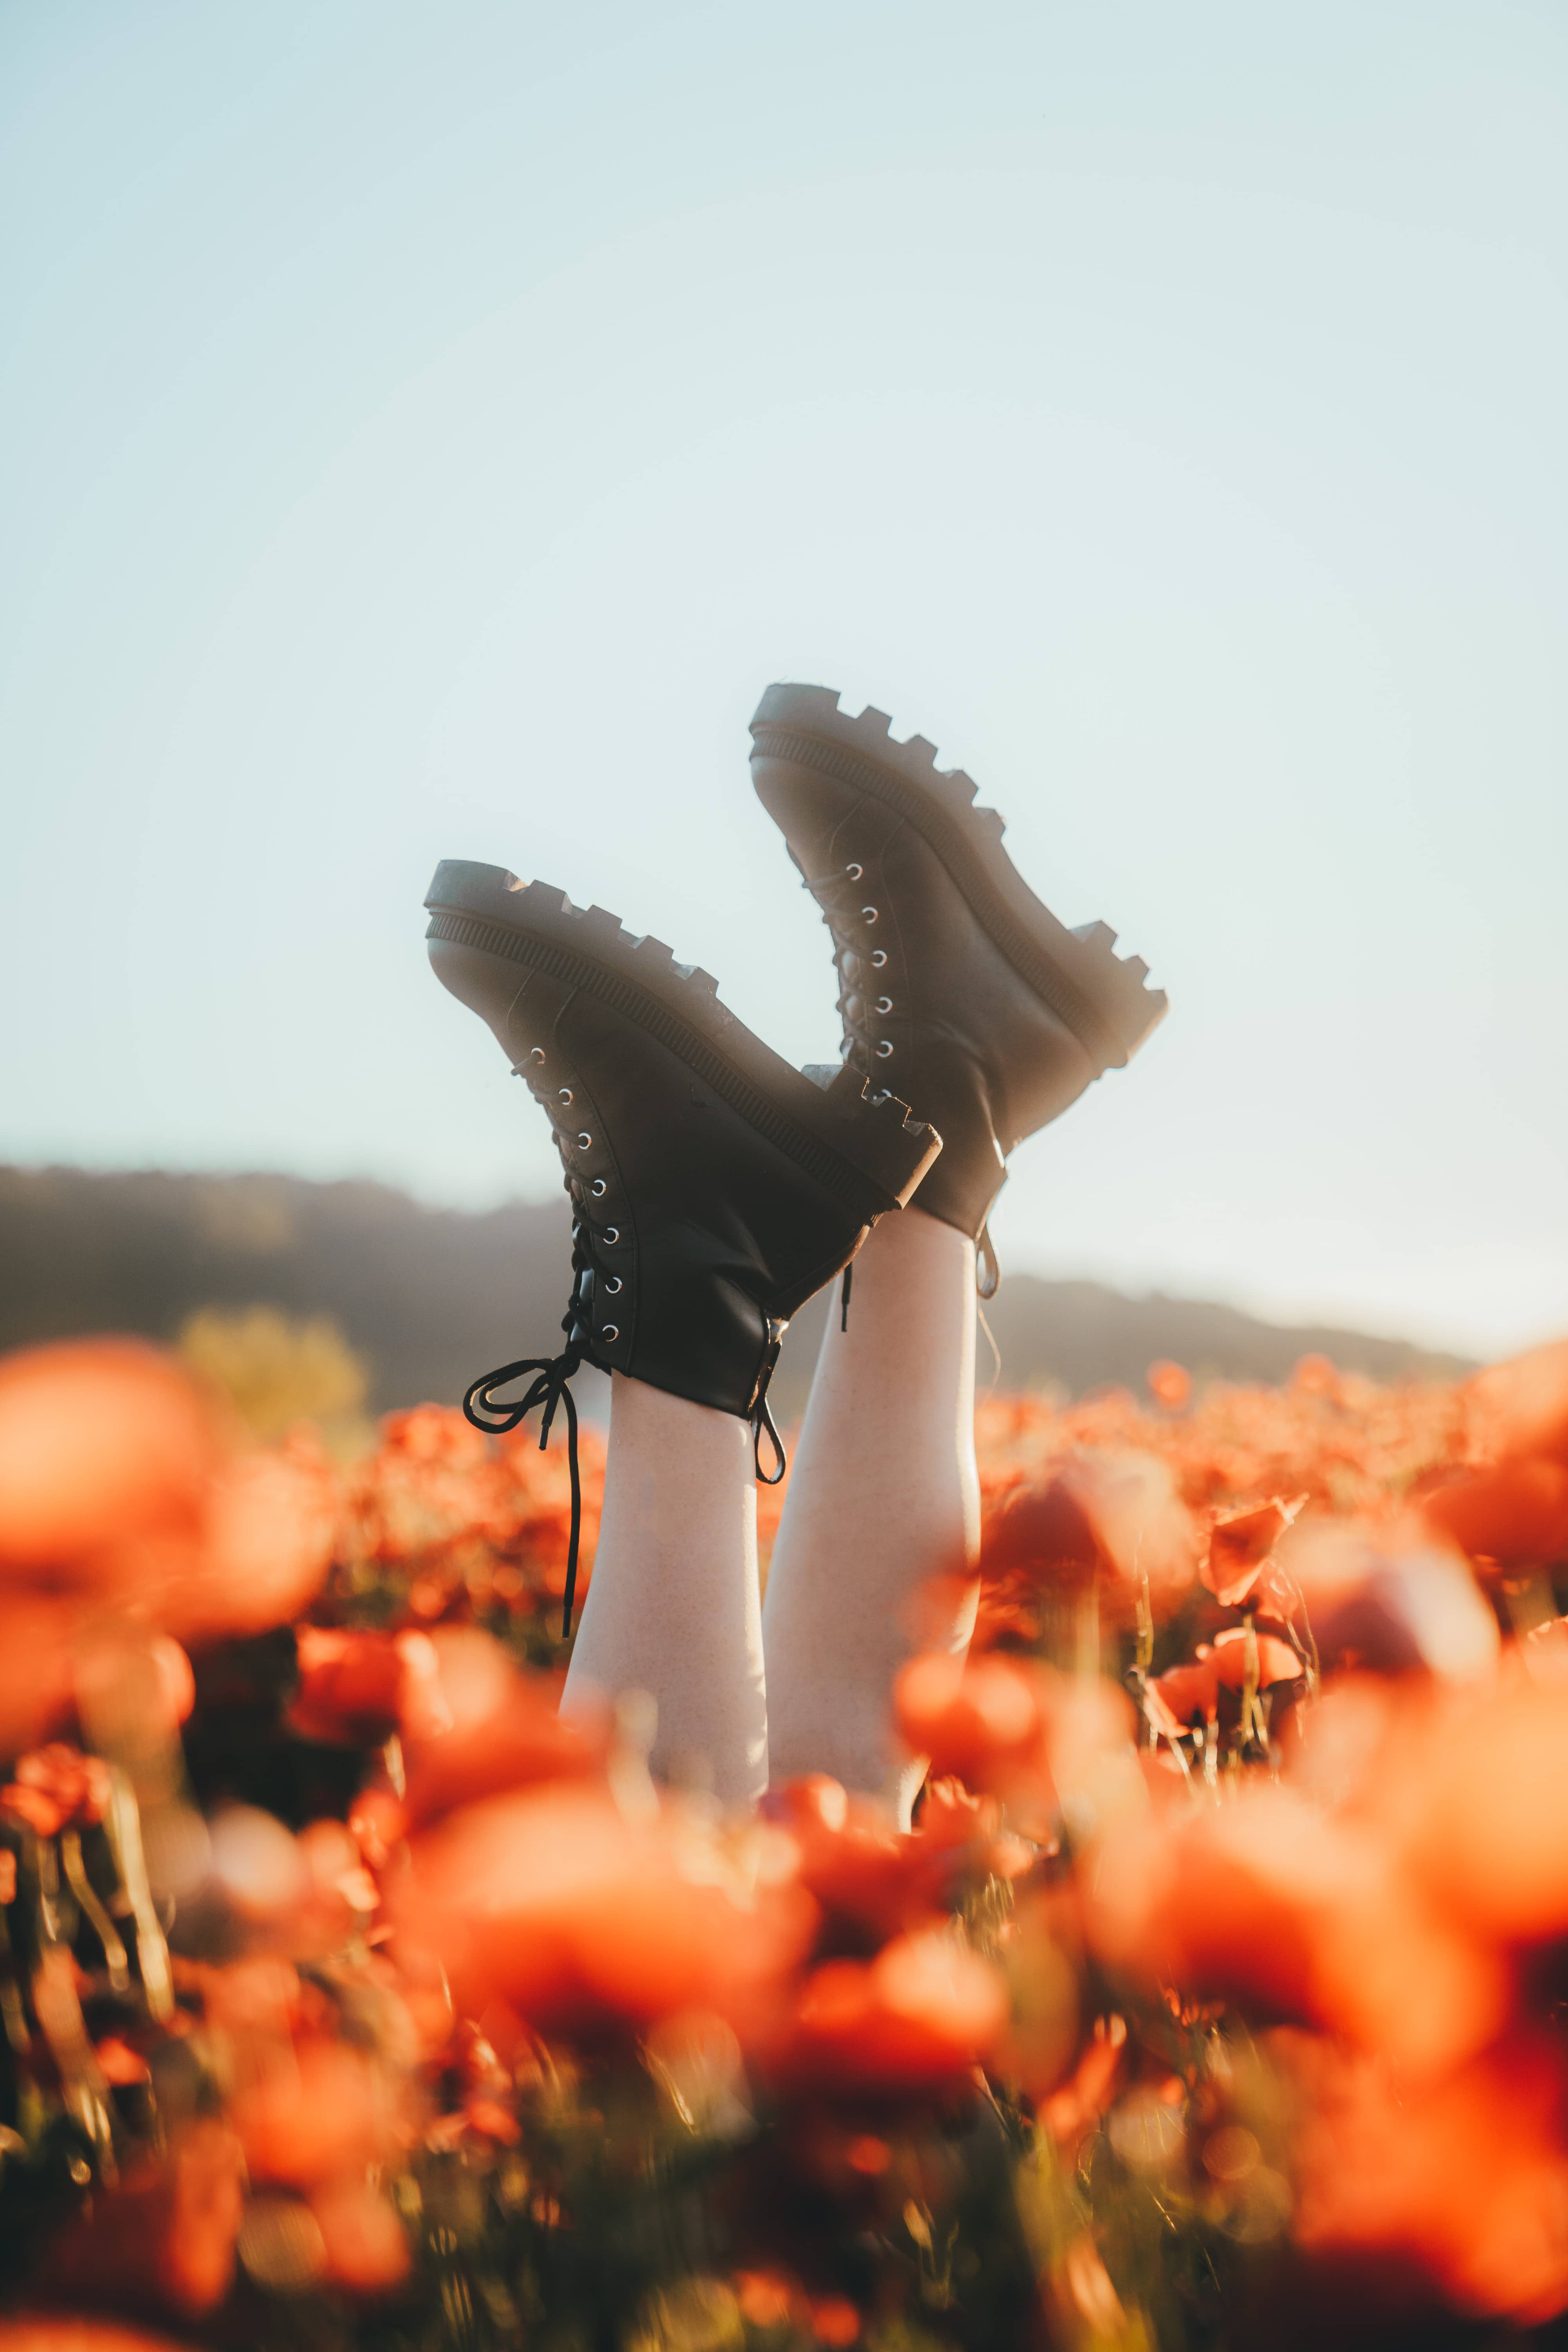 big black boots upside sown surrounded by poppy flowers